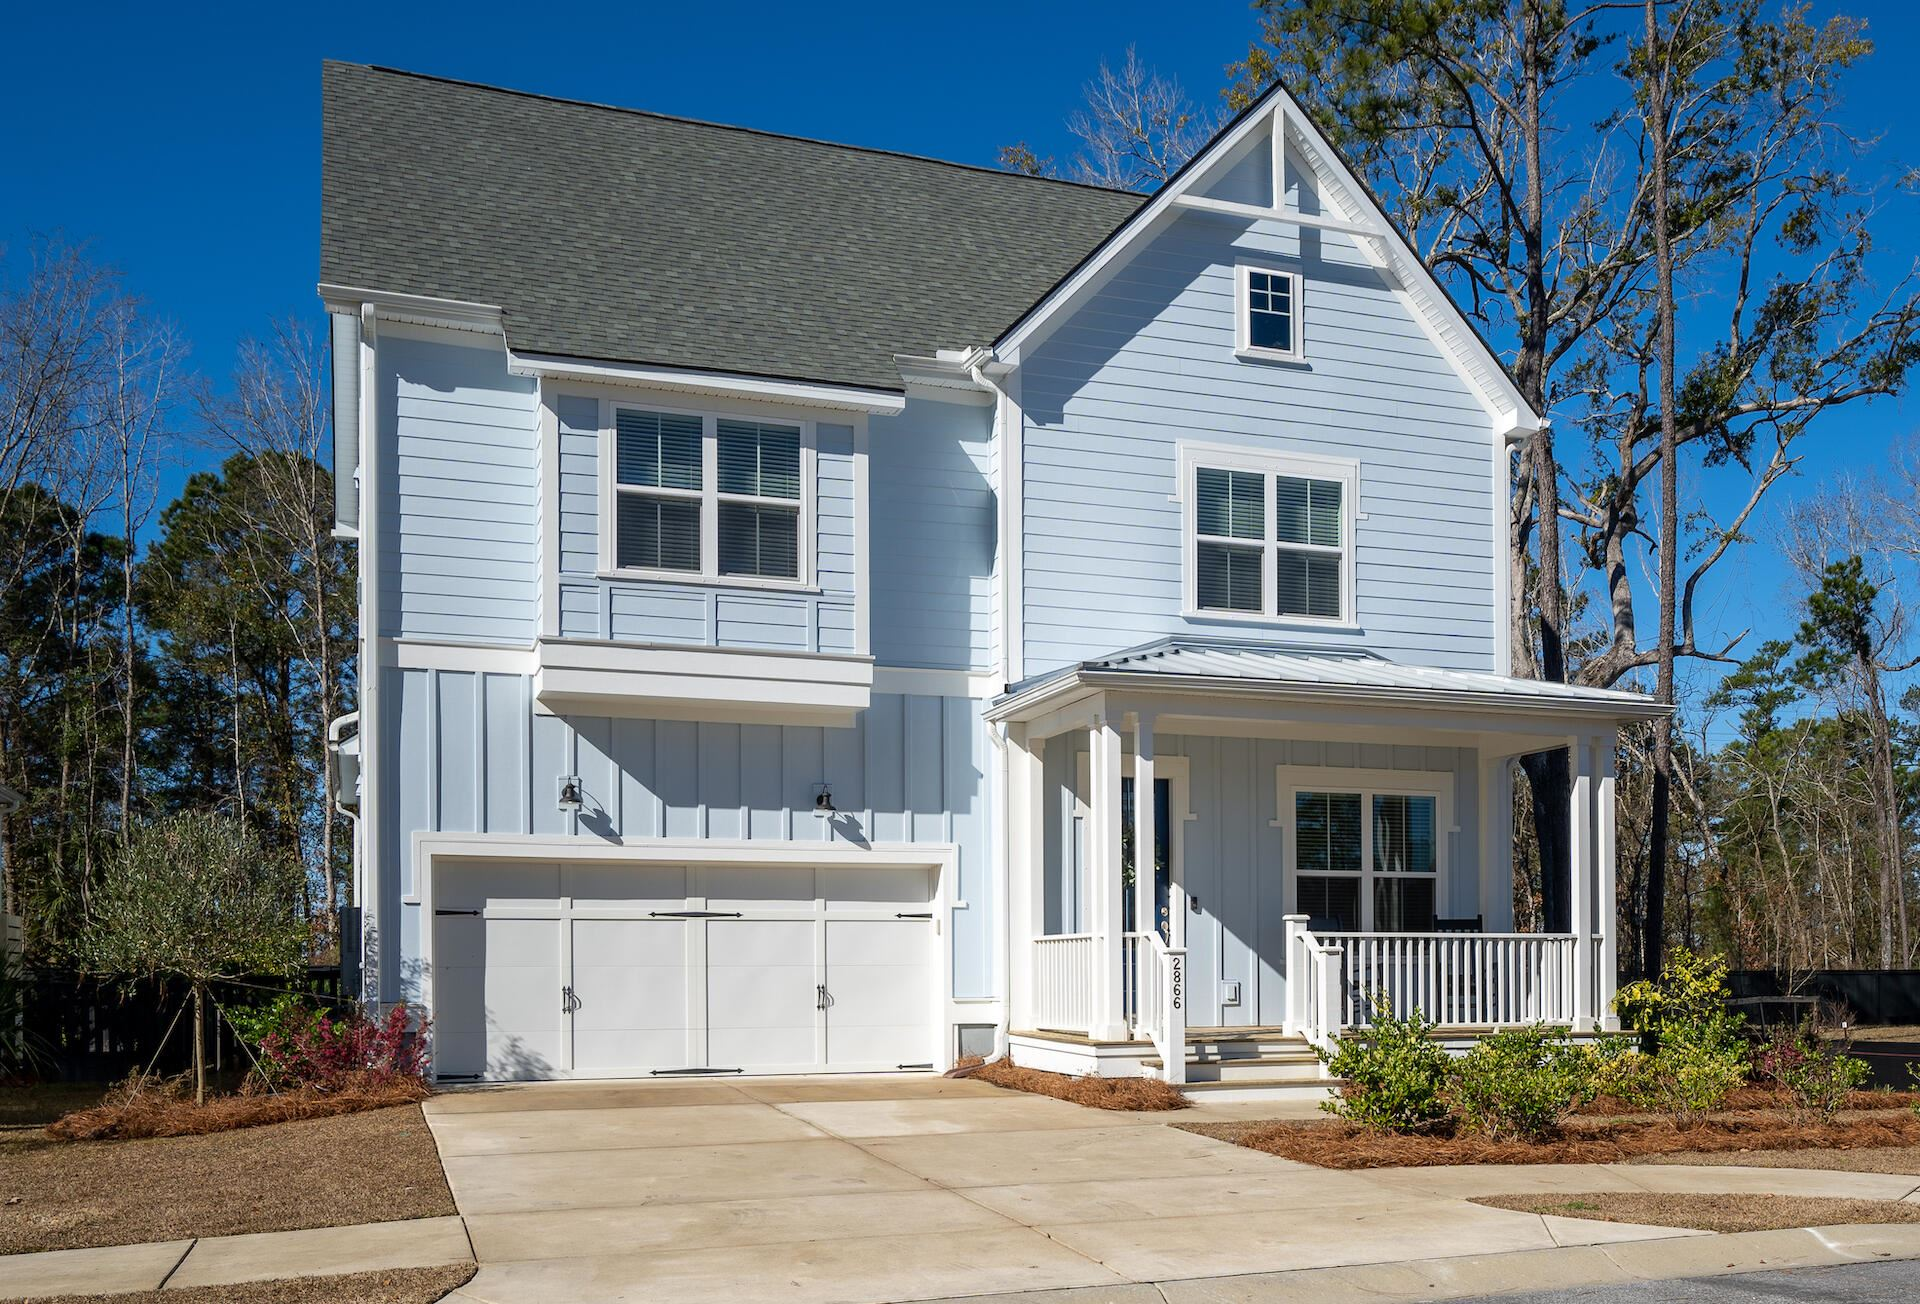 Photo of 2866 Dragonfly Circle, Mount Pleasant, SC 29466 (MLS # 21004818)